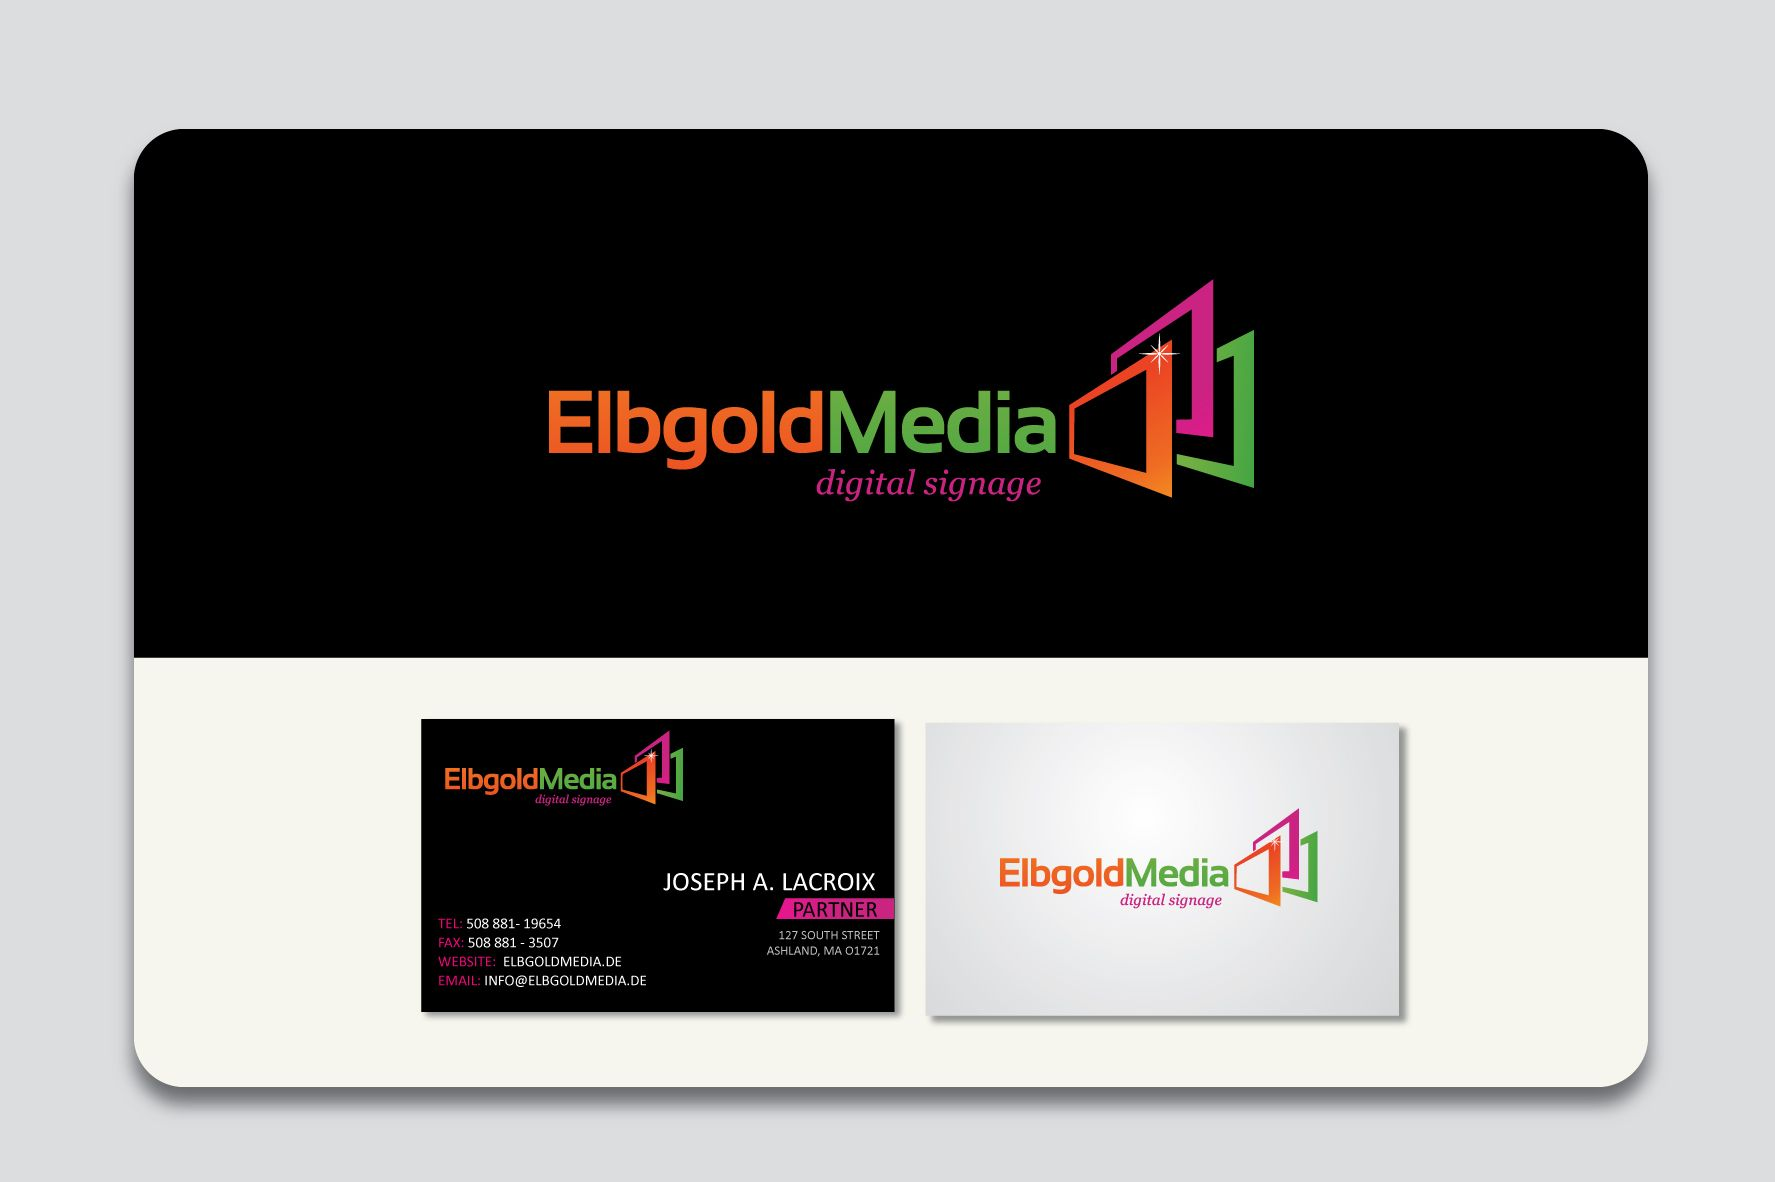 Logo and business card design elbgold media is a provider of logo and business card design elbgold media is a provider of digital signage and deals with the consultation design creation and operation of digital colourmoves